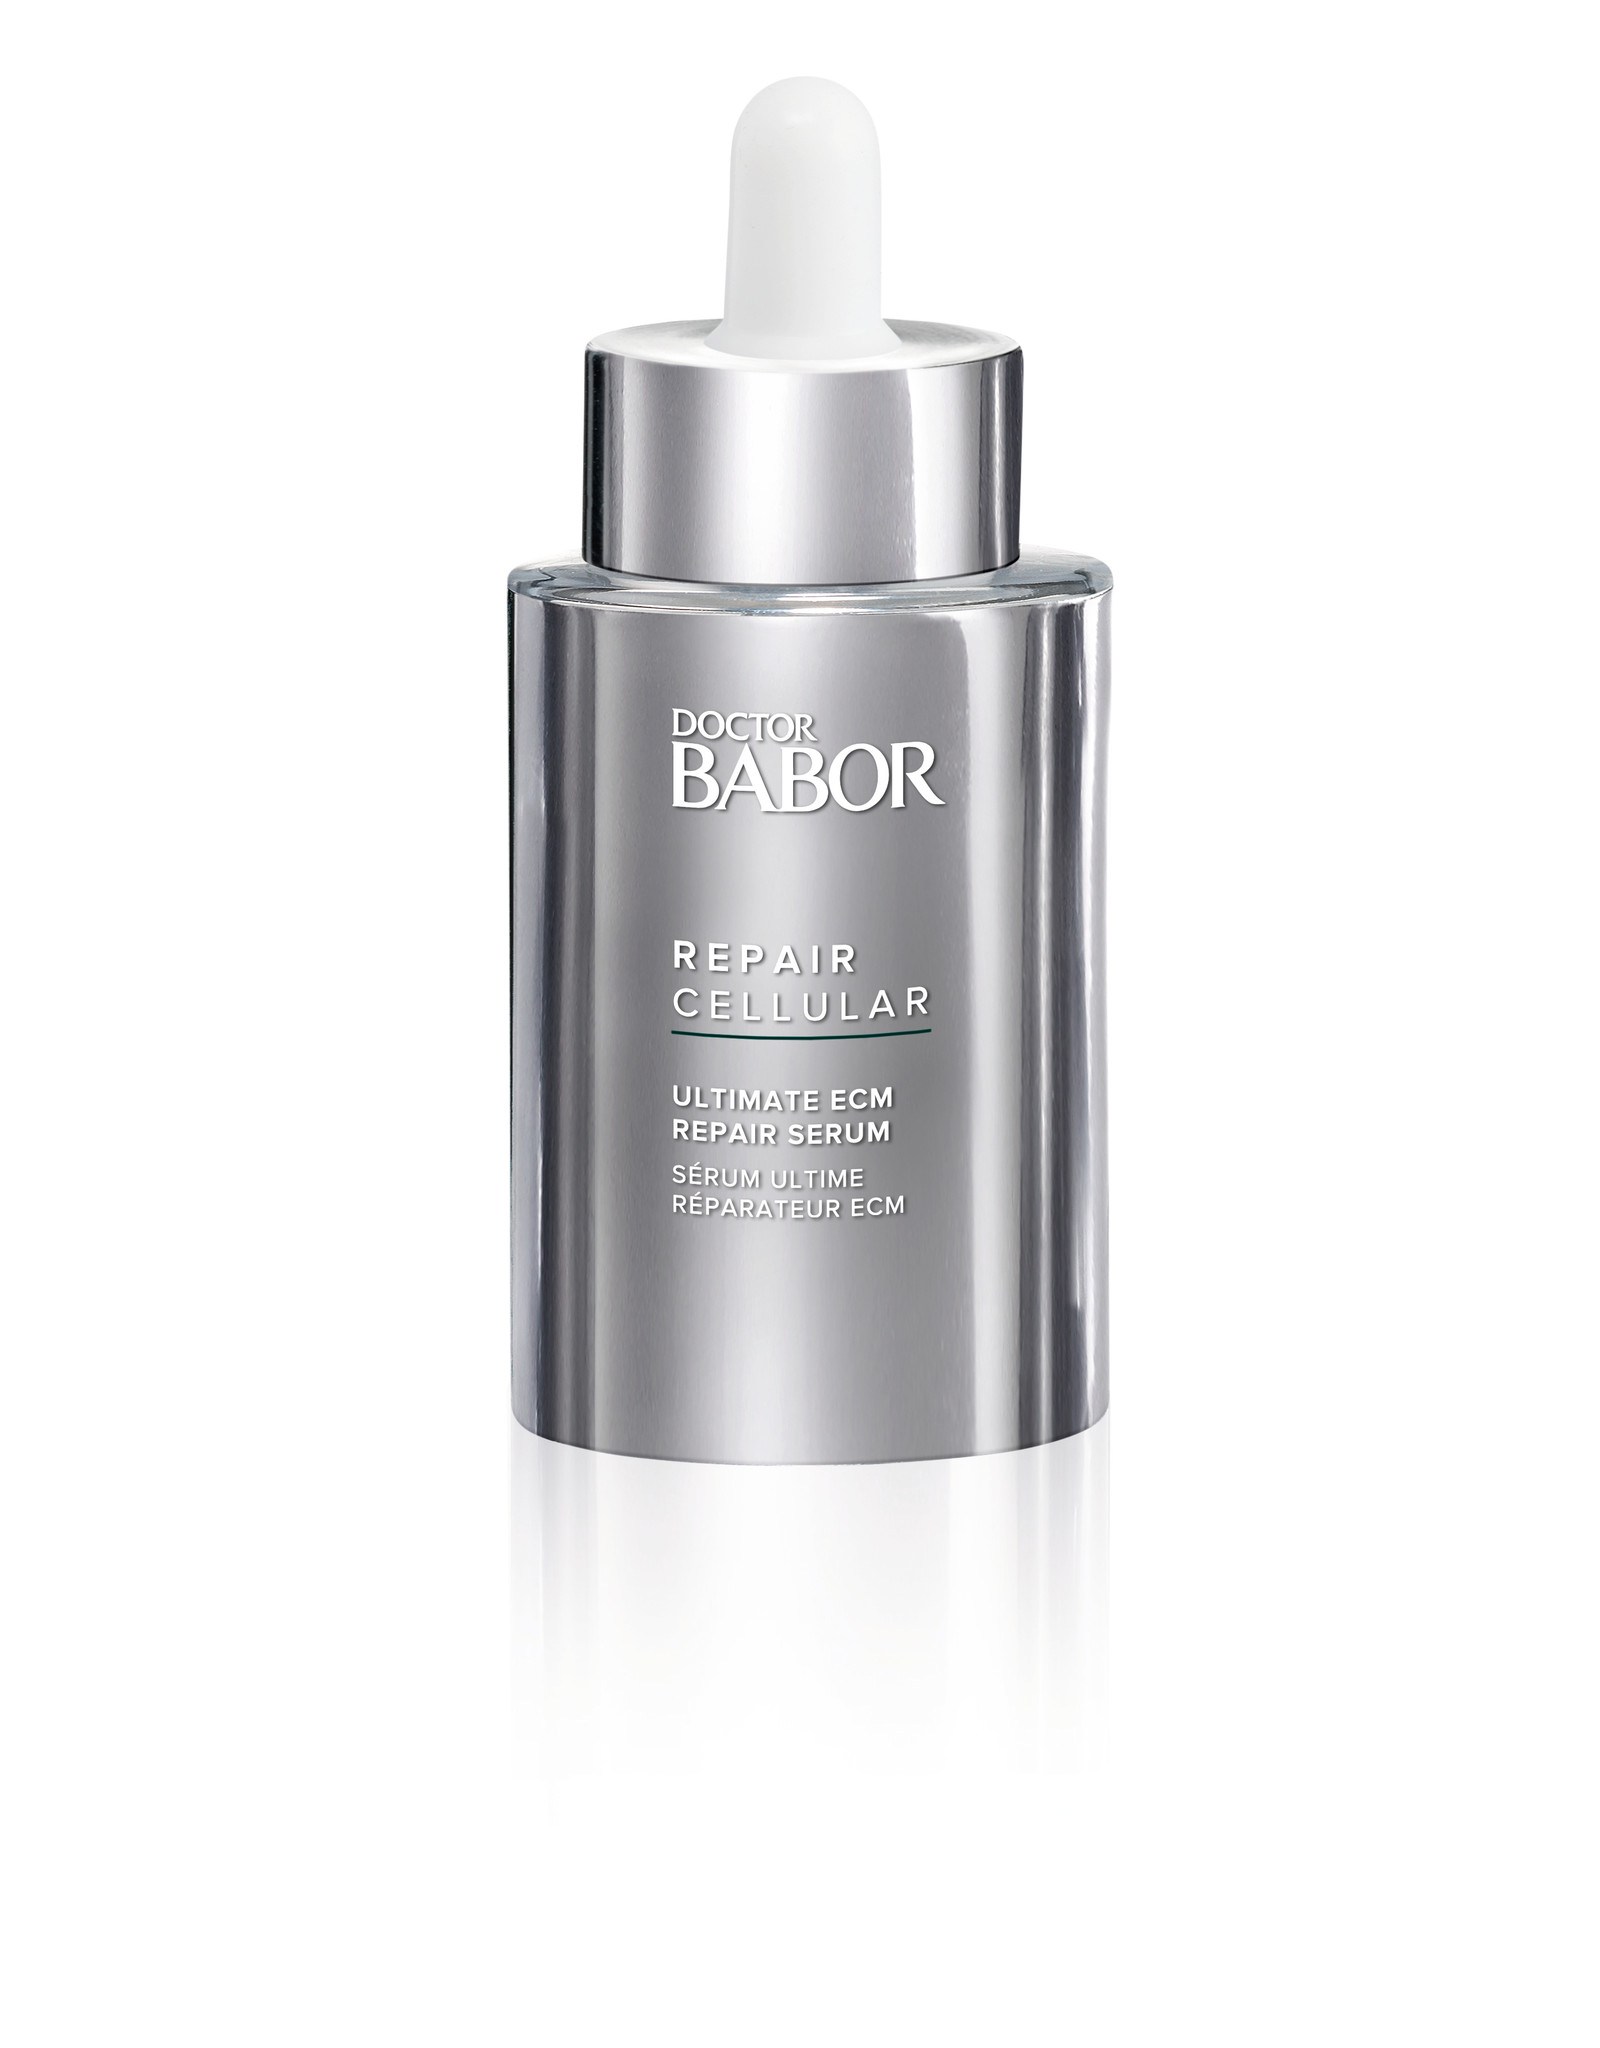 BABOR DOCTOR BABOR ULTIMATE ECM REPAIR SERUM 50 ML